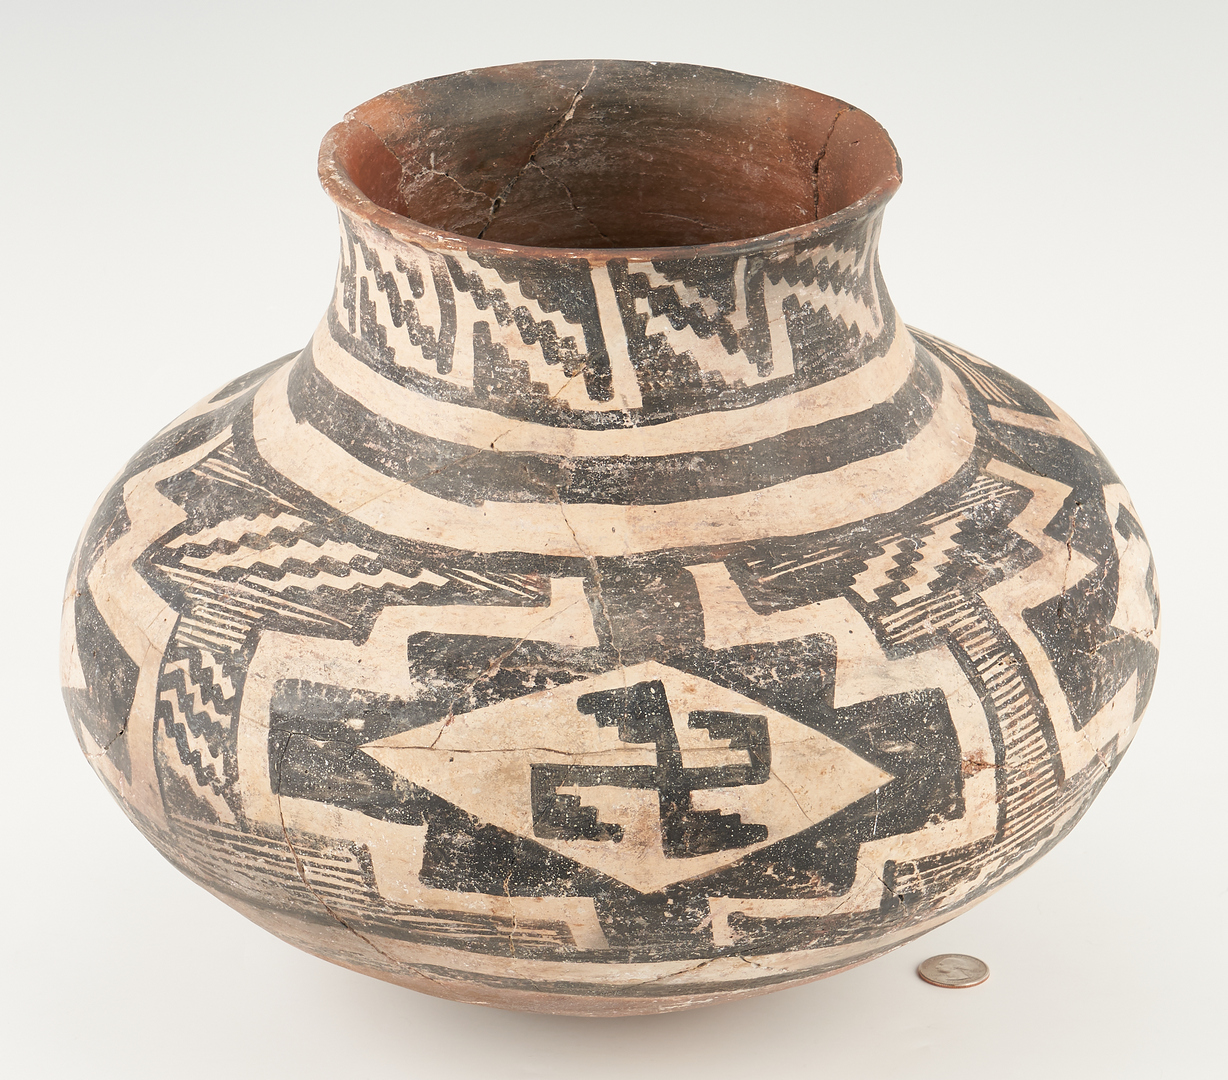 Lot 685: Large Early Anasazi Pottery Olla, Black & White on Red